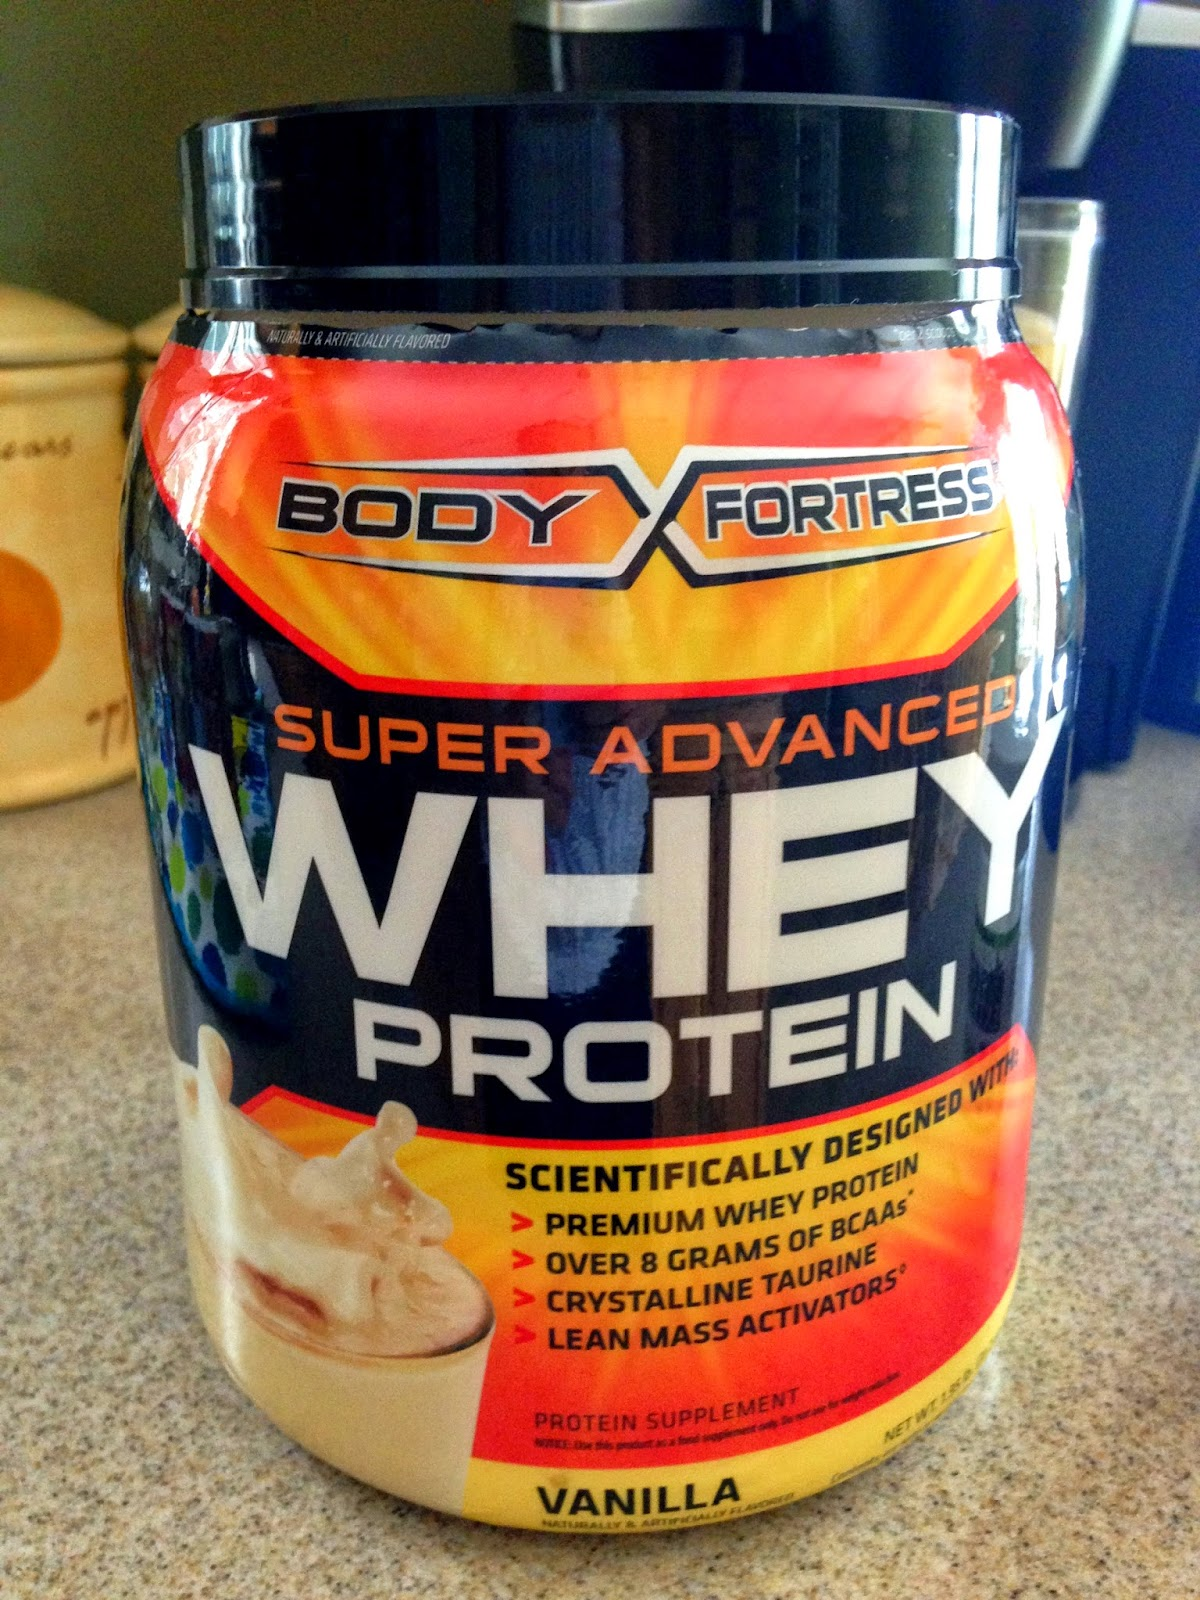 Body Fortress Super Advanced Vanilla Whey Protein on Hungry Gator Gal